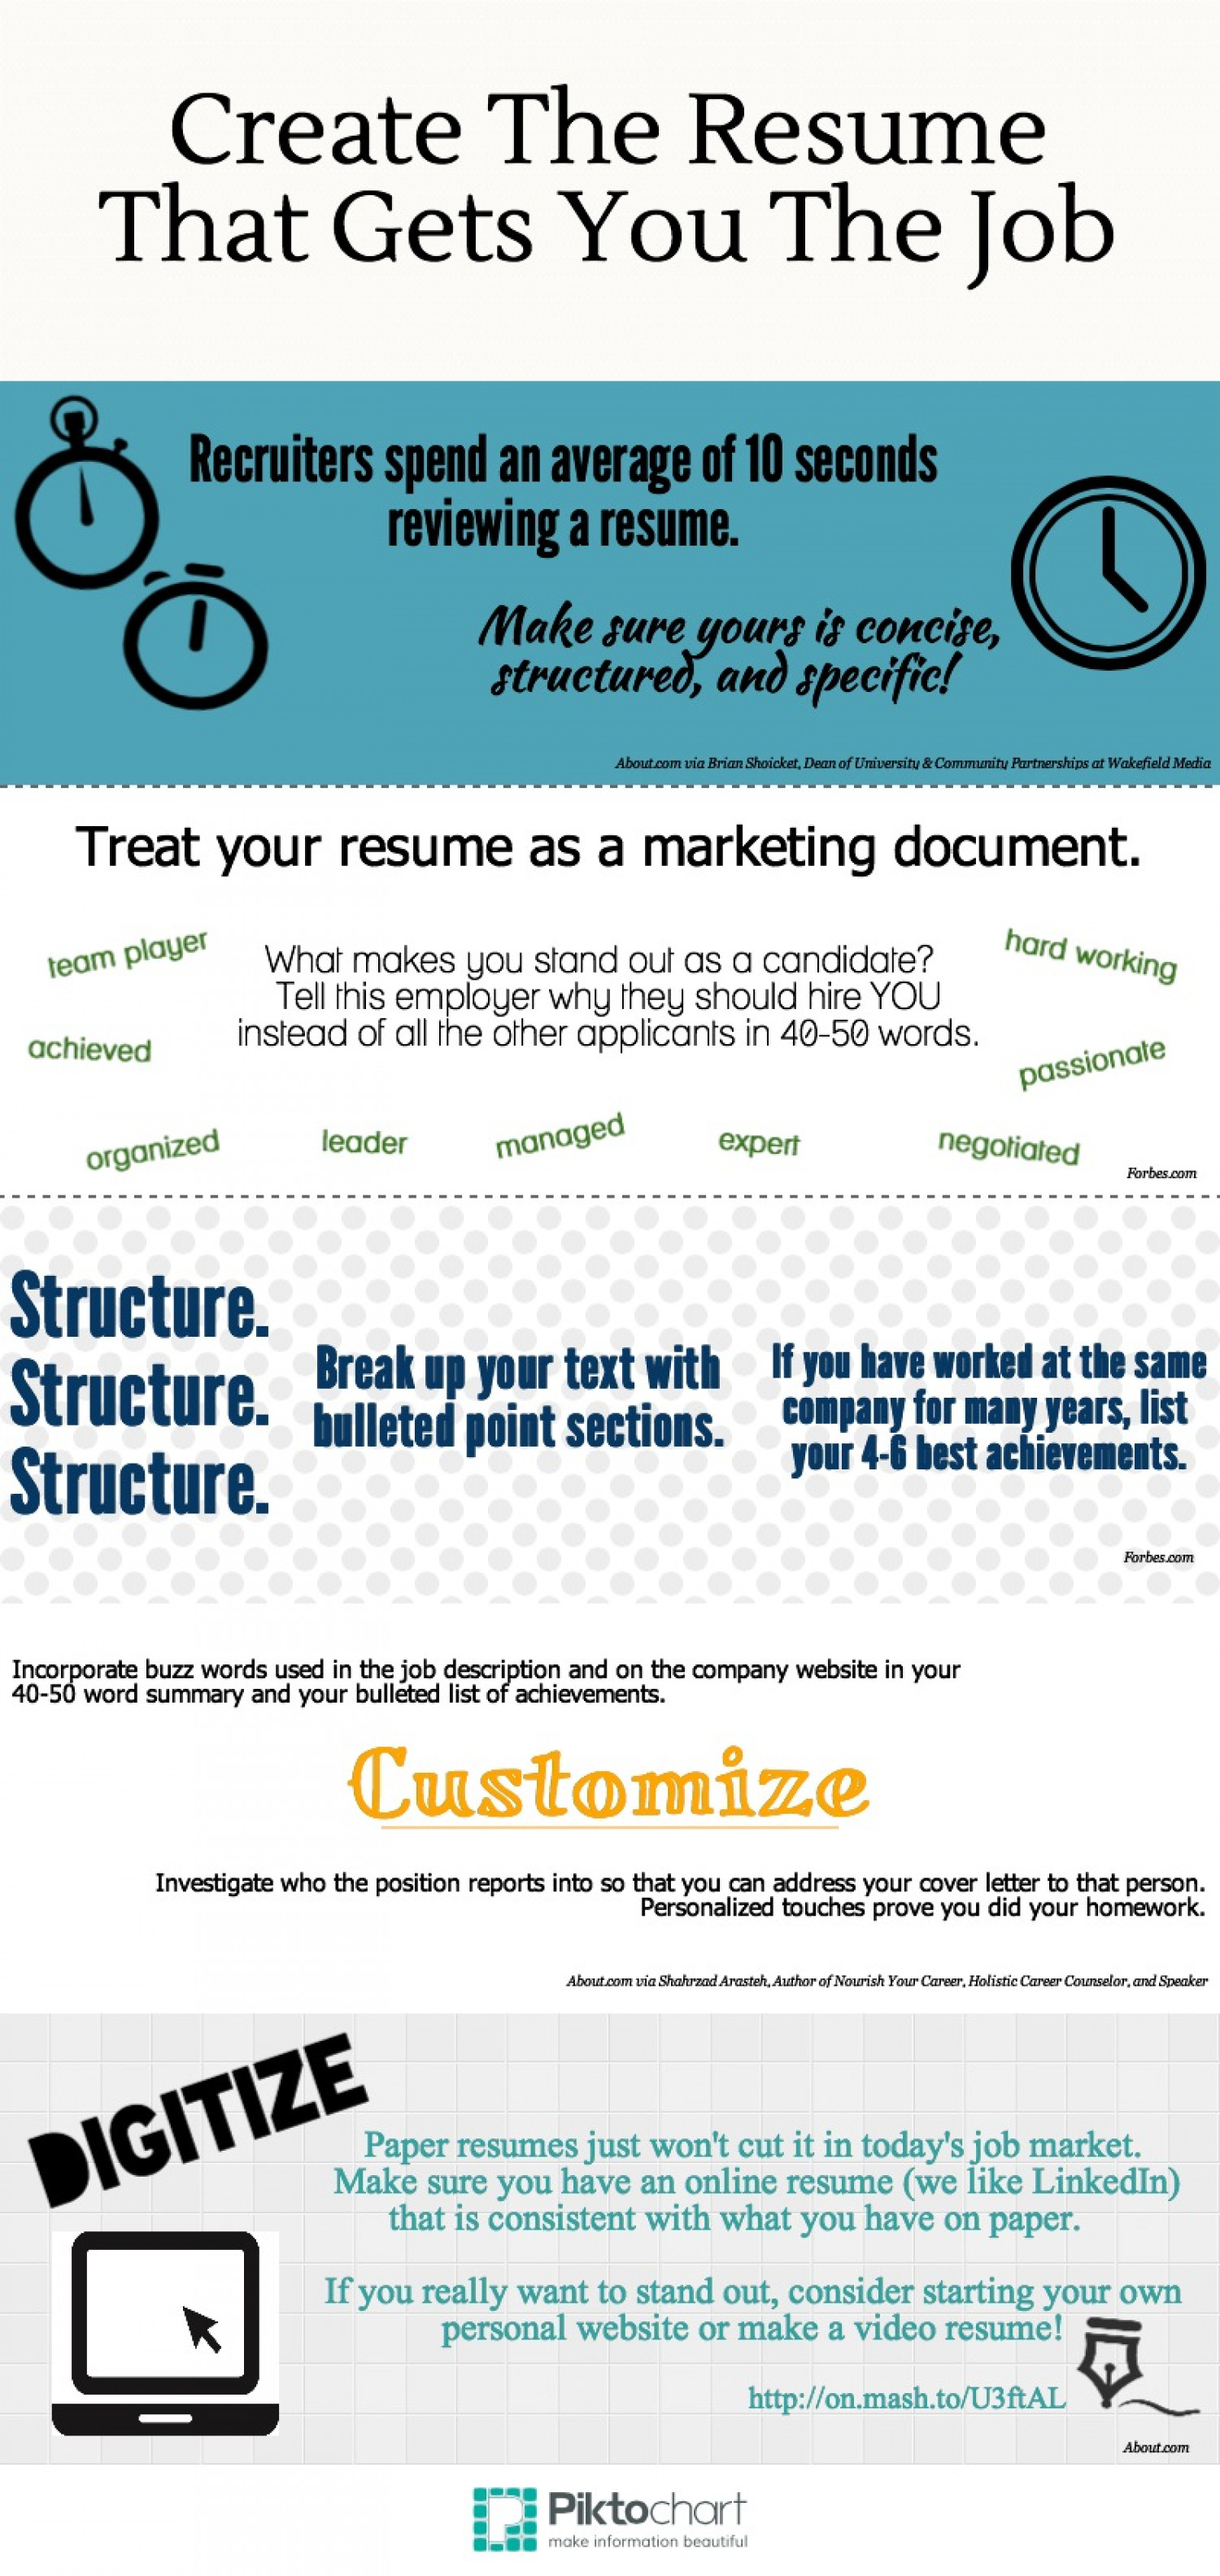 How To Make Your Resume Stand Out Infographic  Nursing Resumes That Stand Out